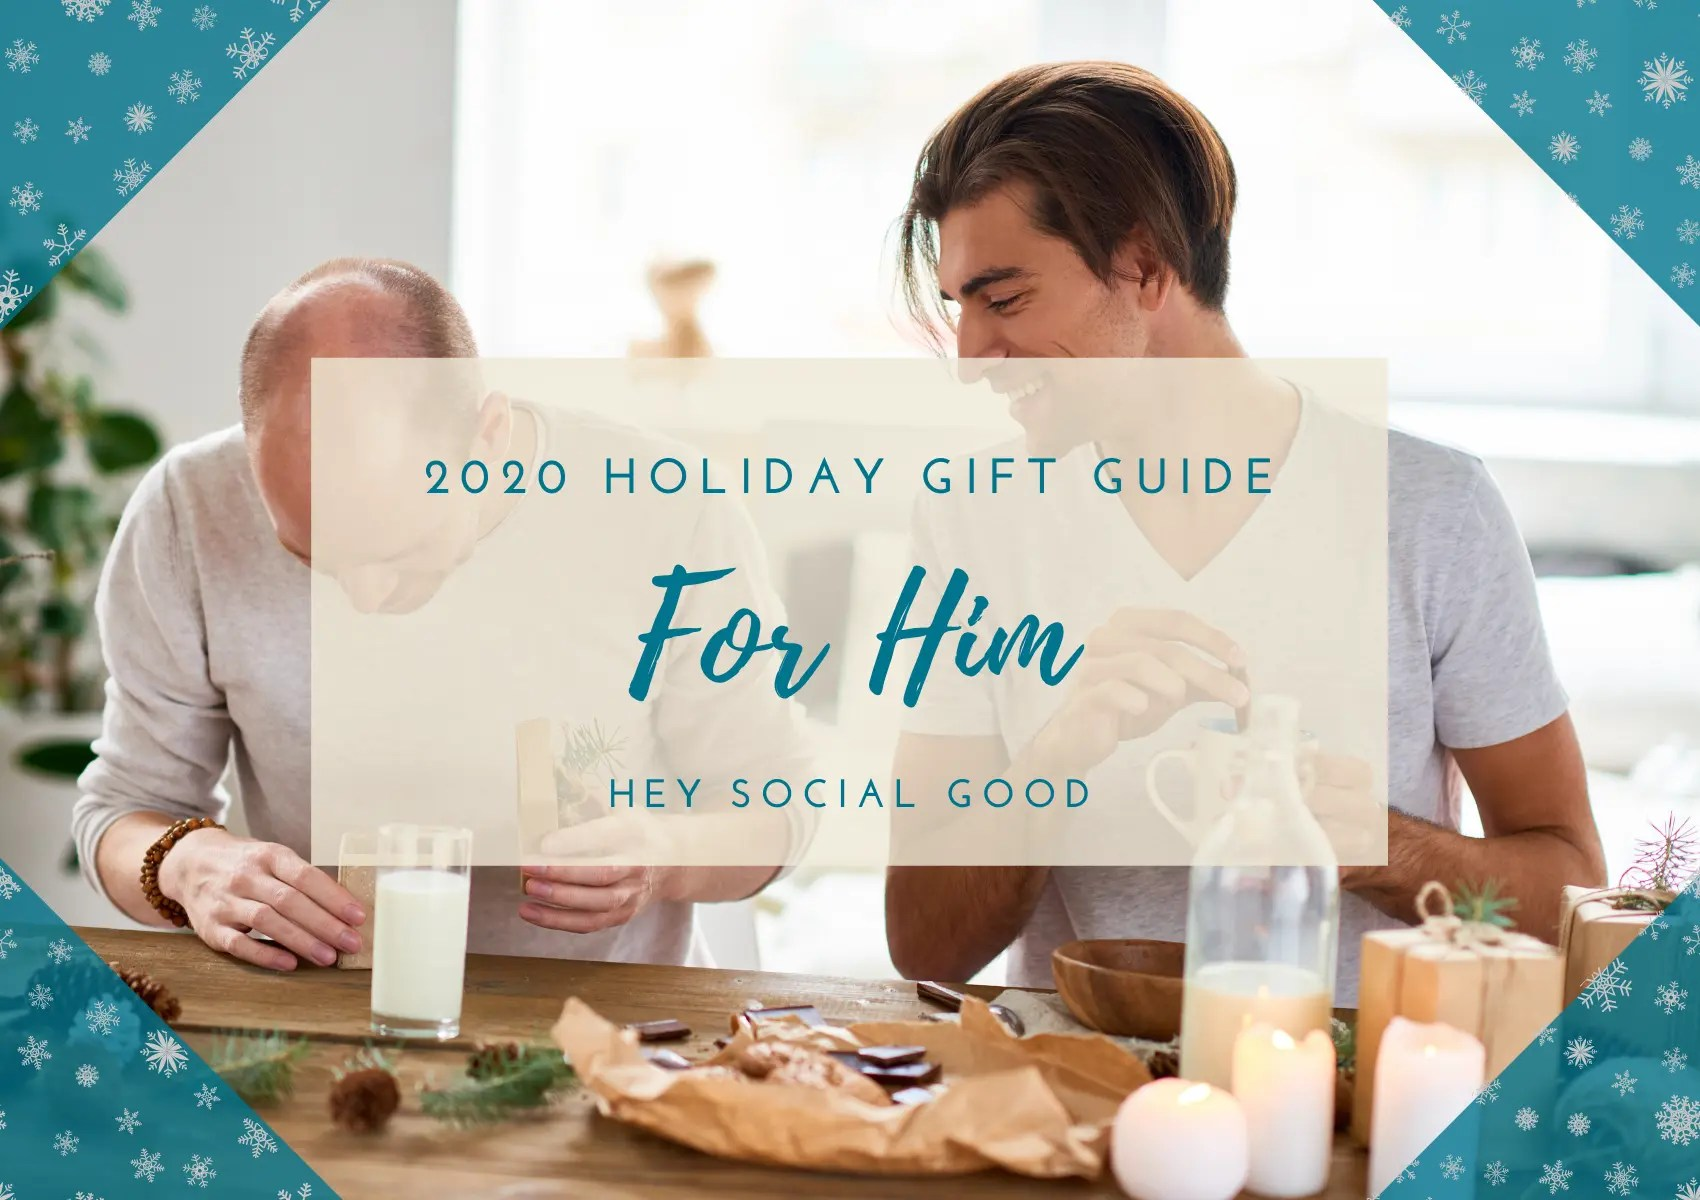 Sustainable and Ethical Holiday Gift Guide for Him